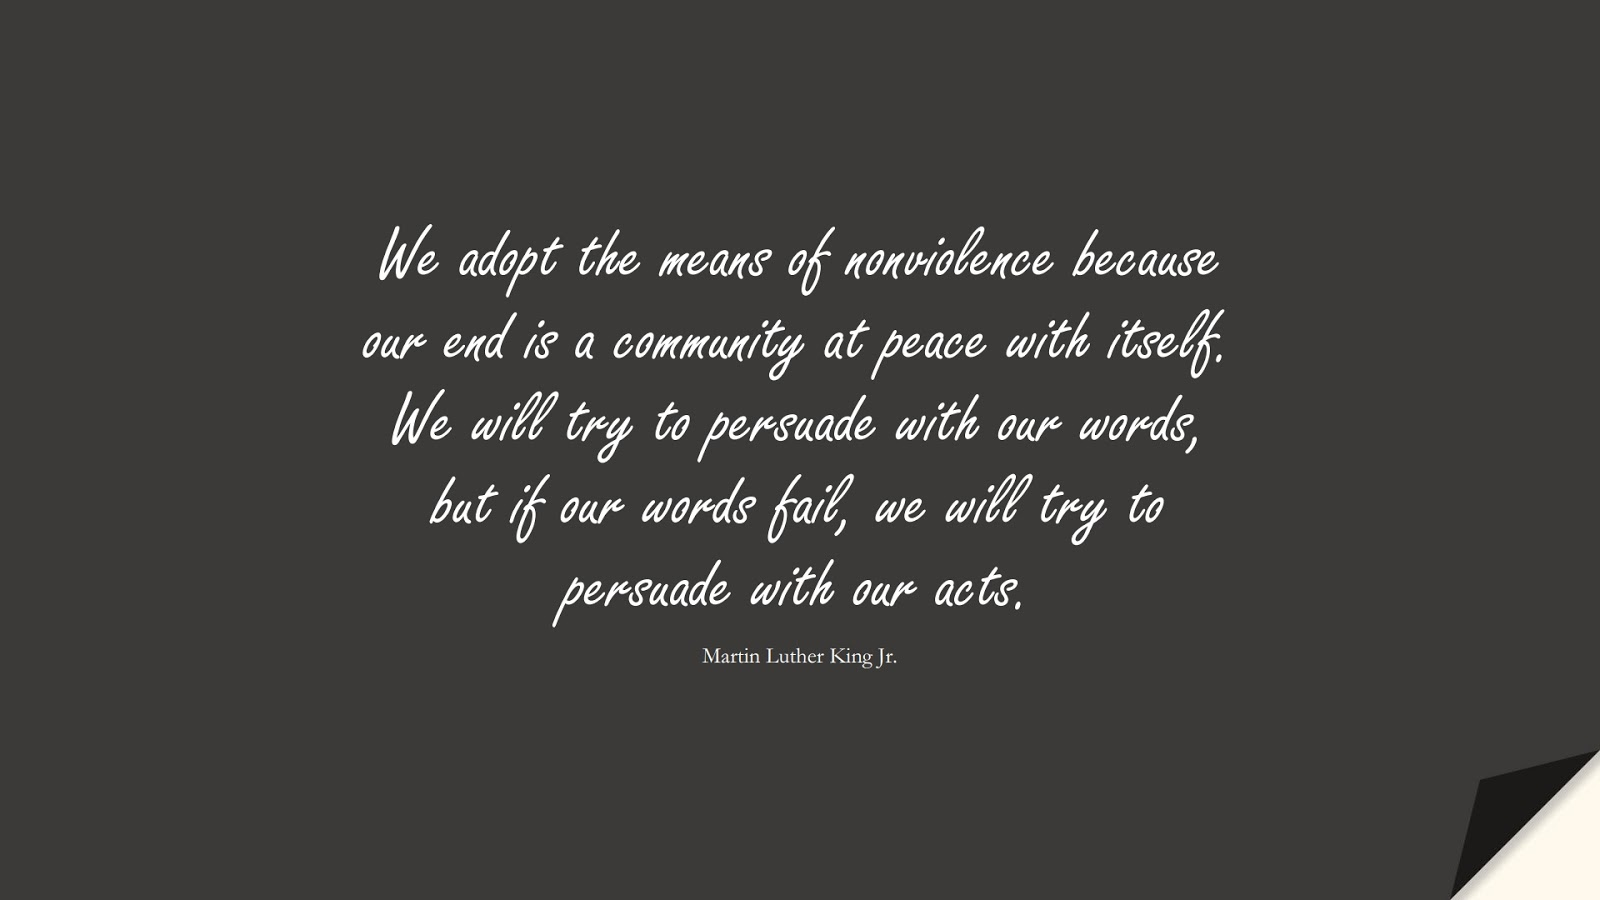 We adopt the means of nonviolence because our end is a community at peace with itself. We will try to persuade with our words, but if our words fail, we will try to persuade with our acts. (Martin Luther King Jr.);  #MartinLutherKingJrQuotes